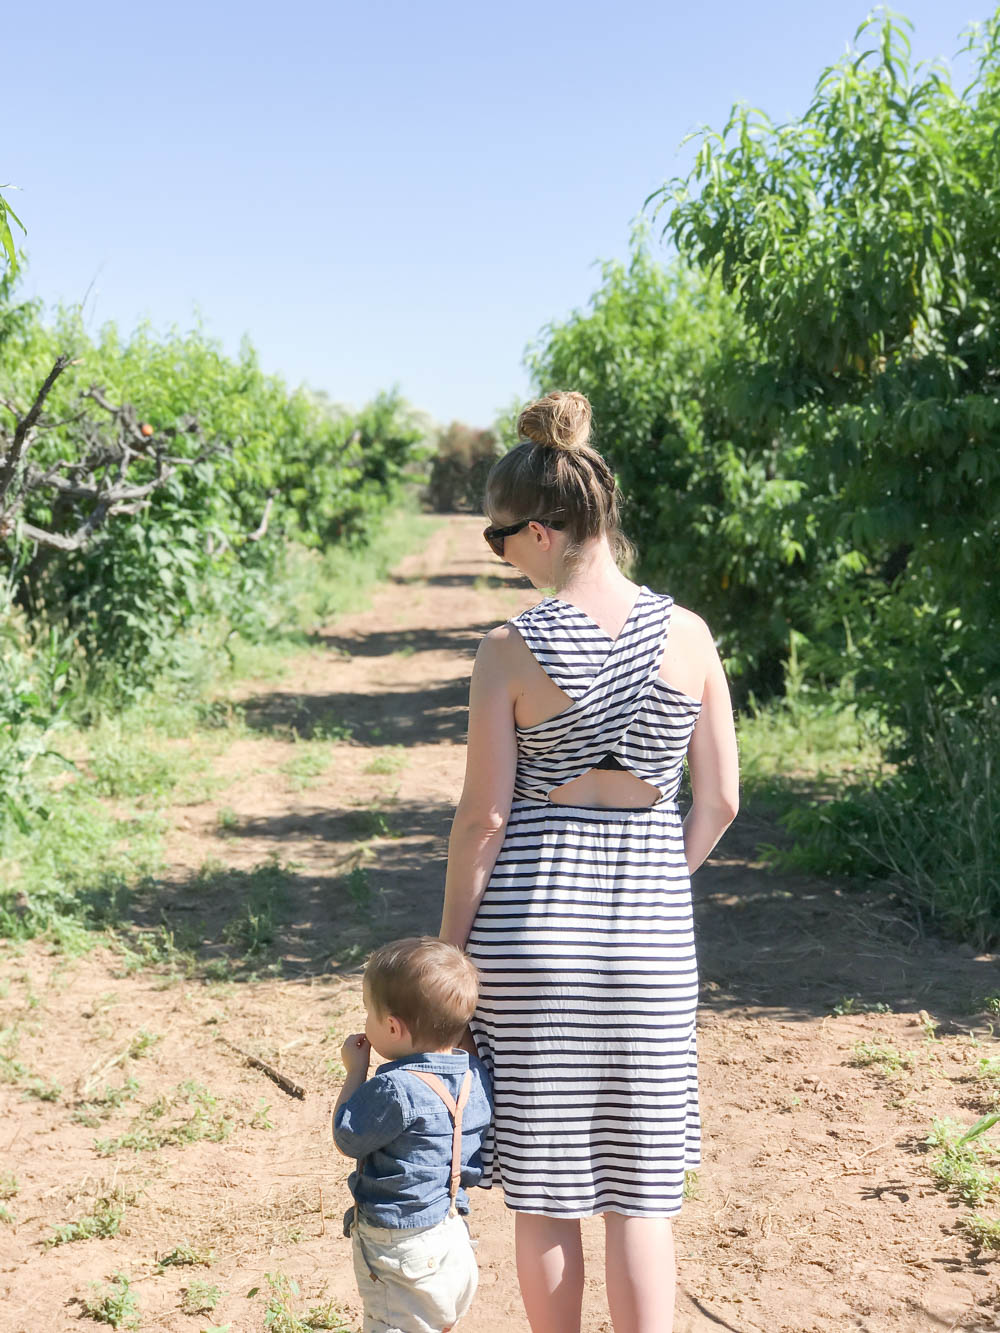 Schnepf Farms Peach Festival | Queen Creek AZ | Mother's Day | Peach Farm